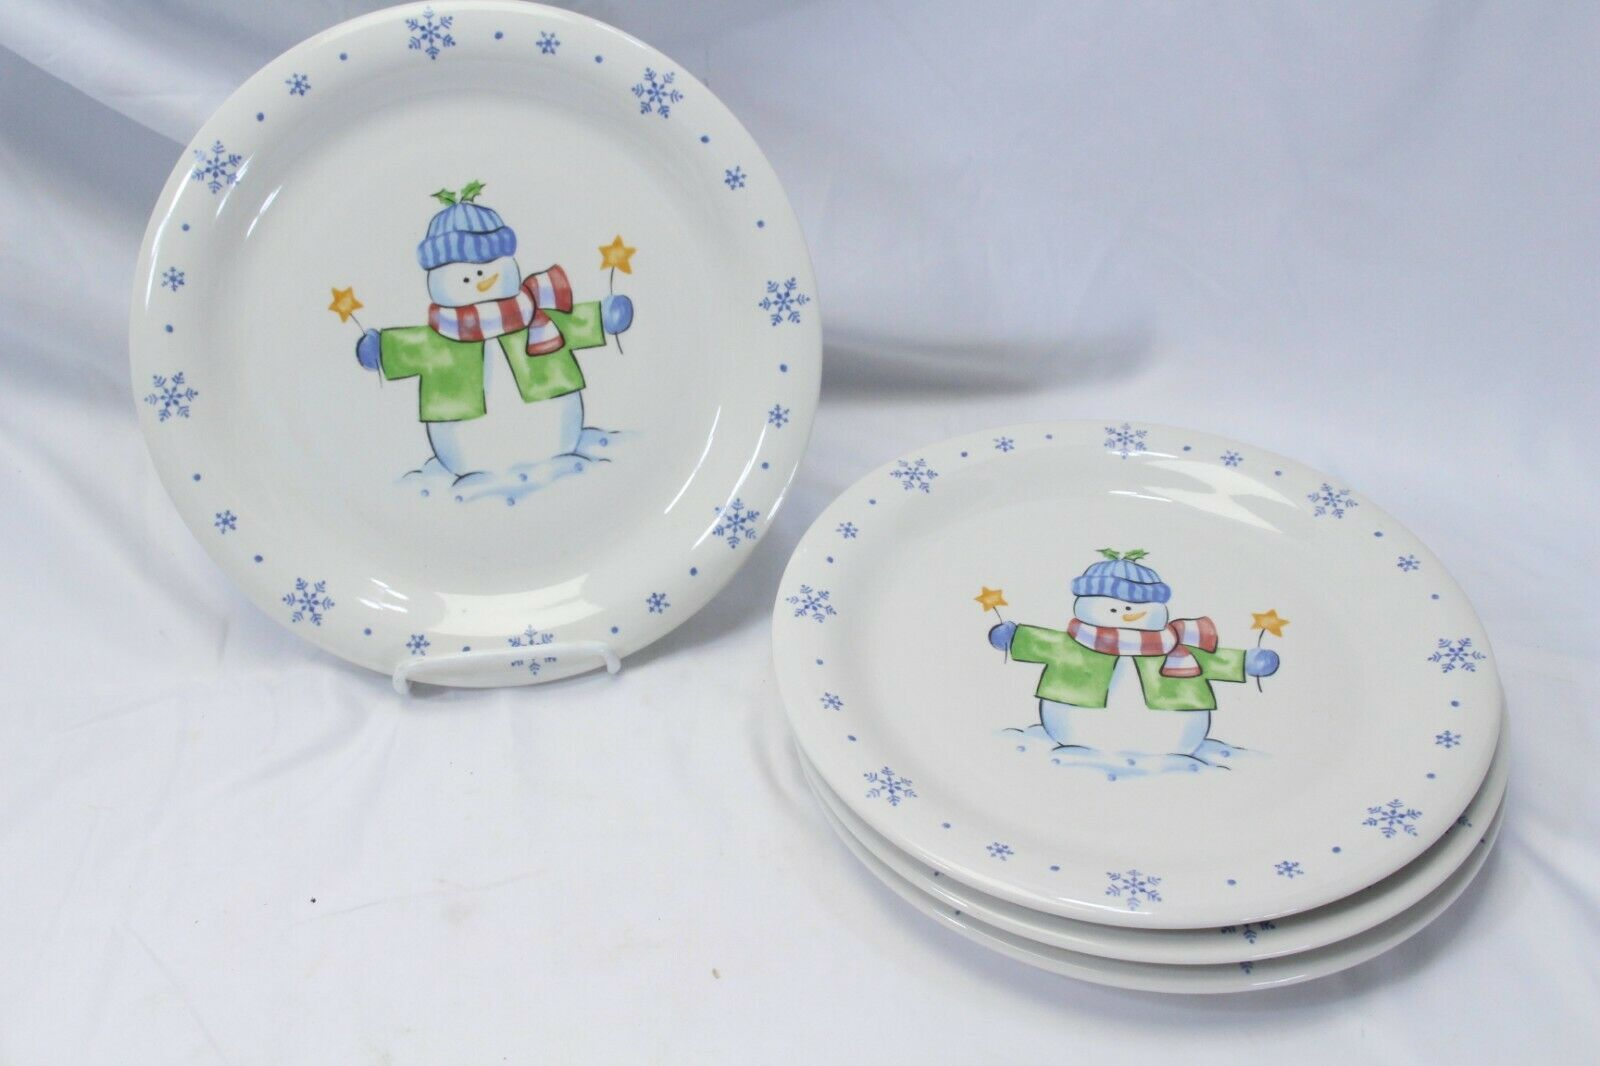 Enchanted Forest Xmas Snowman Snowflake Dinner and Salad Plates Lot of 8 image 6